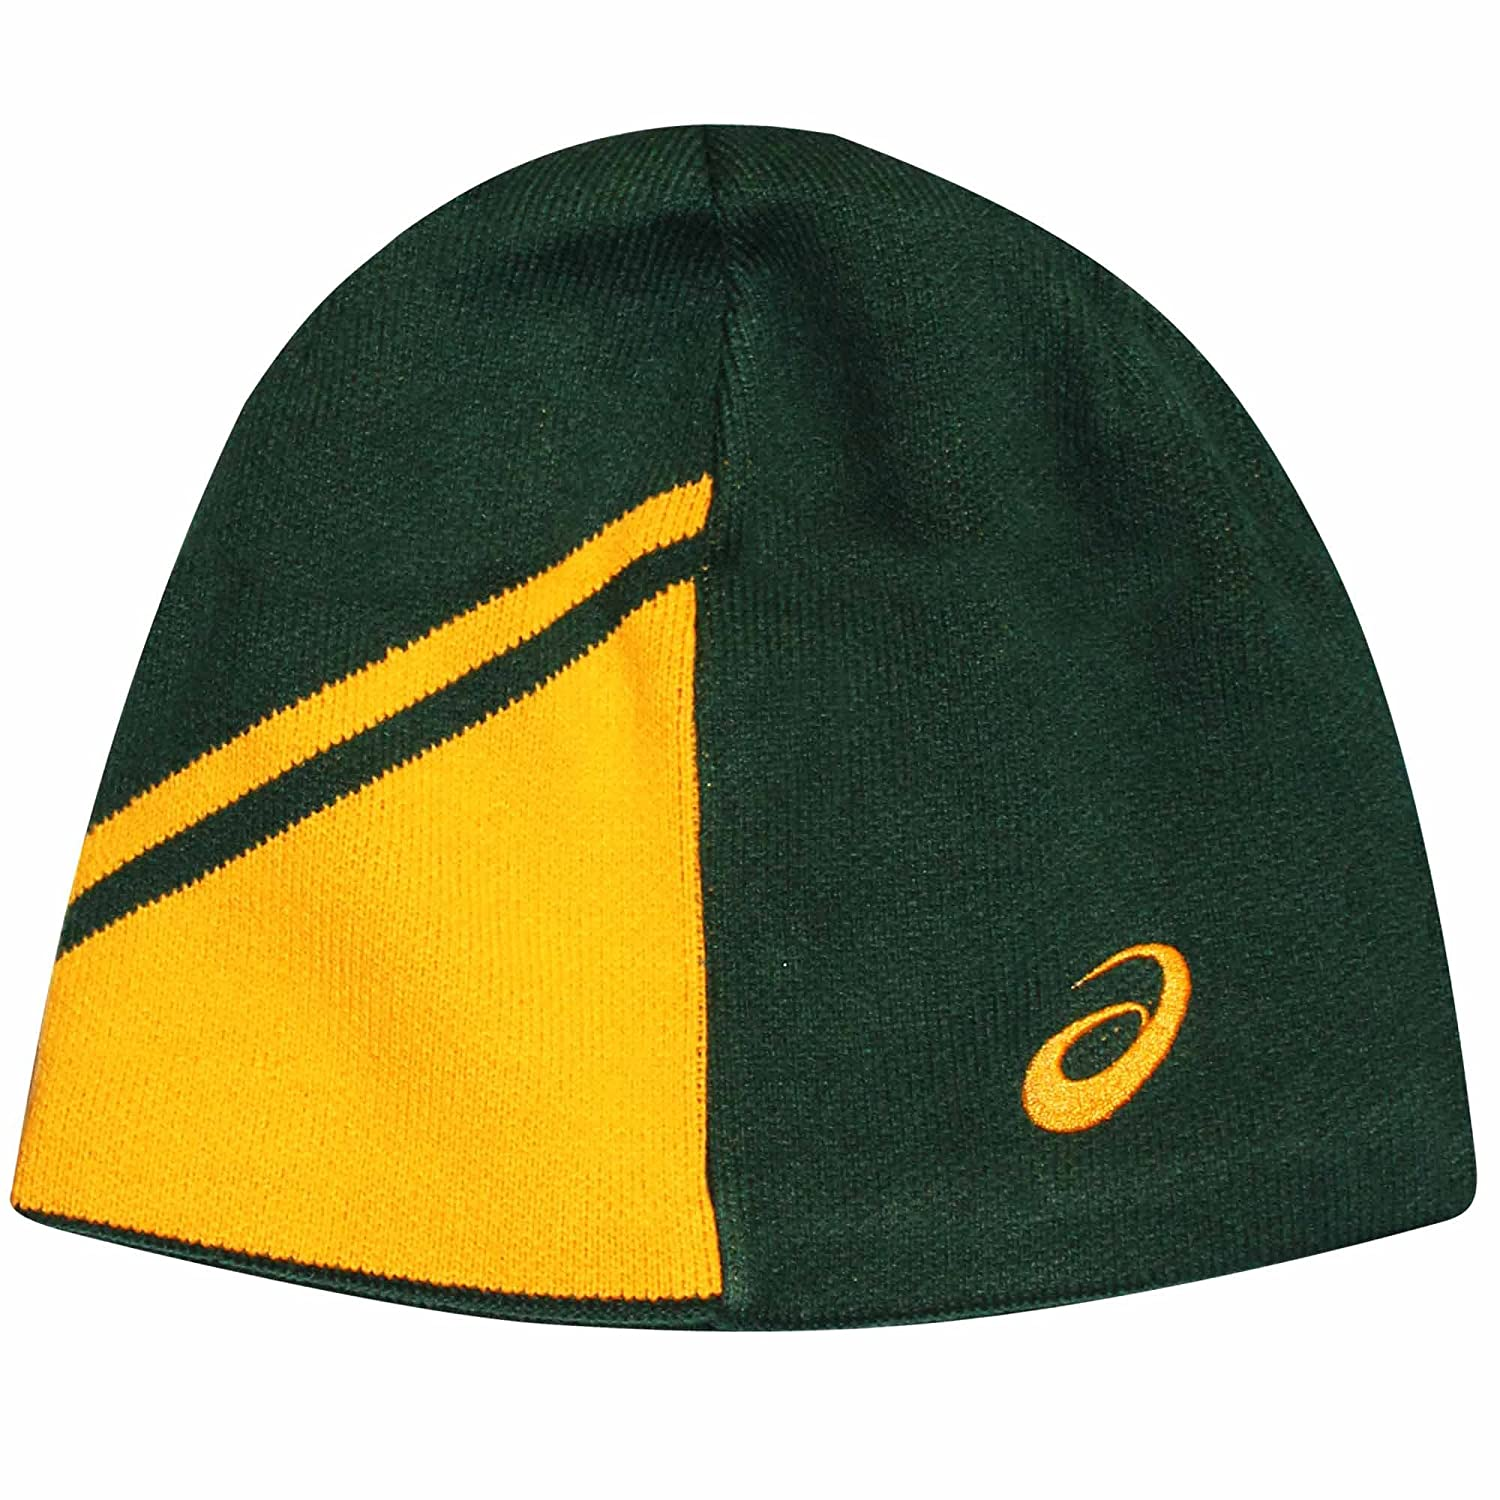 Springboks Official South Africa Rugby World Cup Beanie Hat by ASICS   (Adults ) CAP1145 SPRINGBOKS ... 6a8a7b8e212